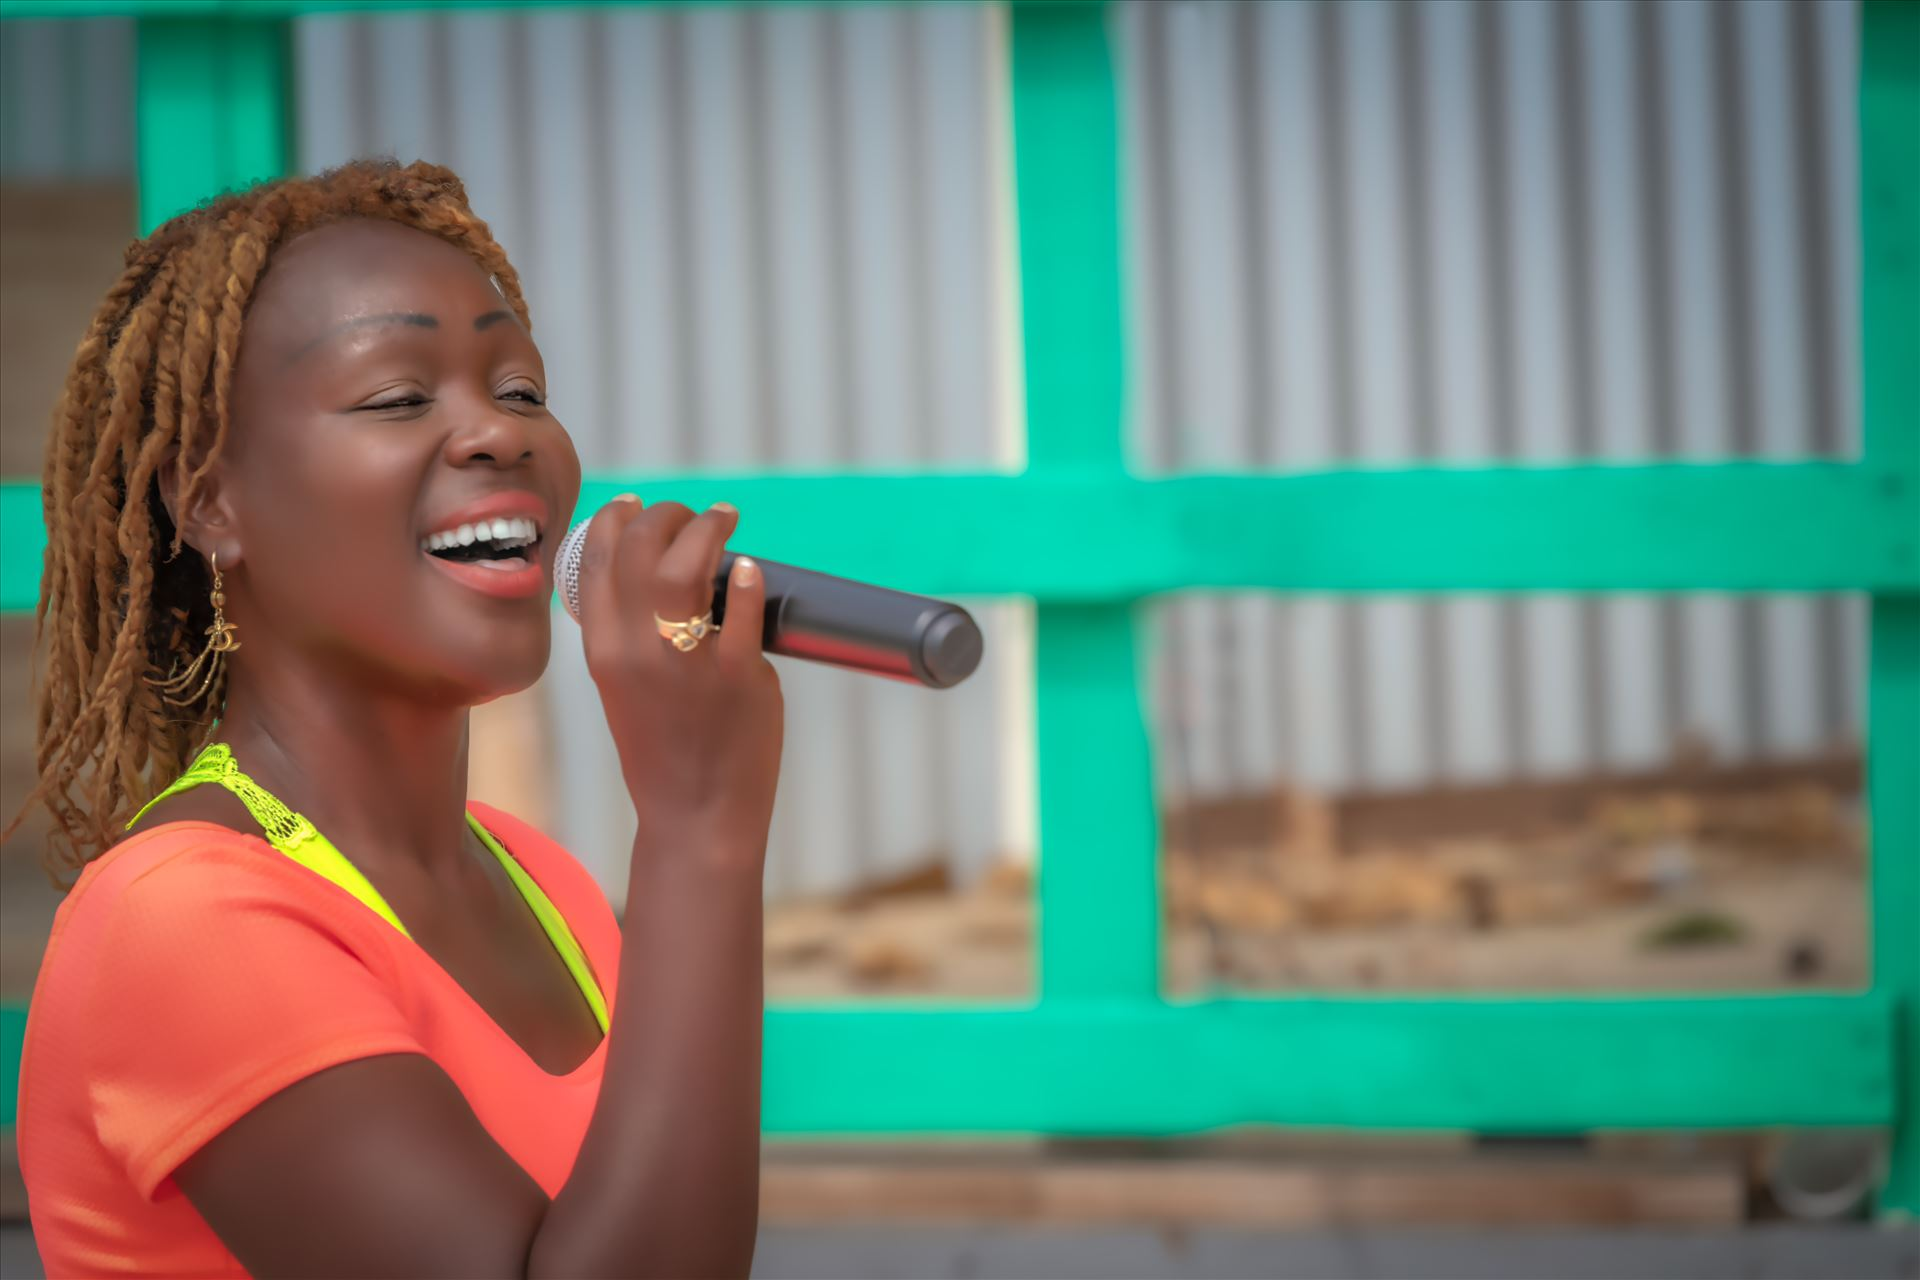 Street performer - young female street performer singing. St. Maarten by Terry Kelly Photography